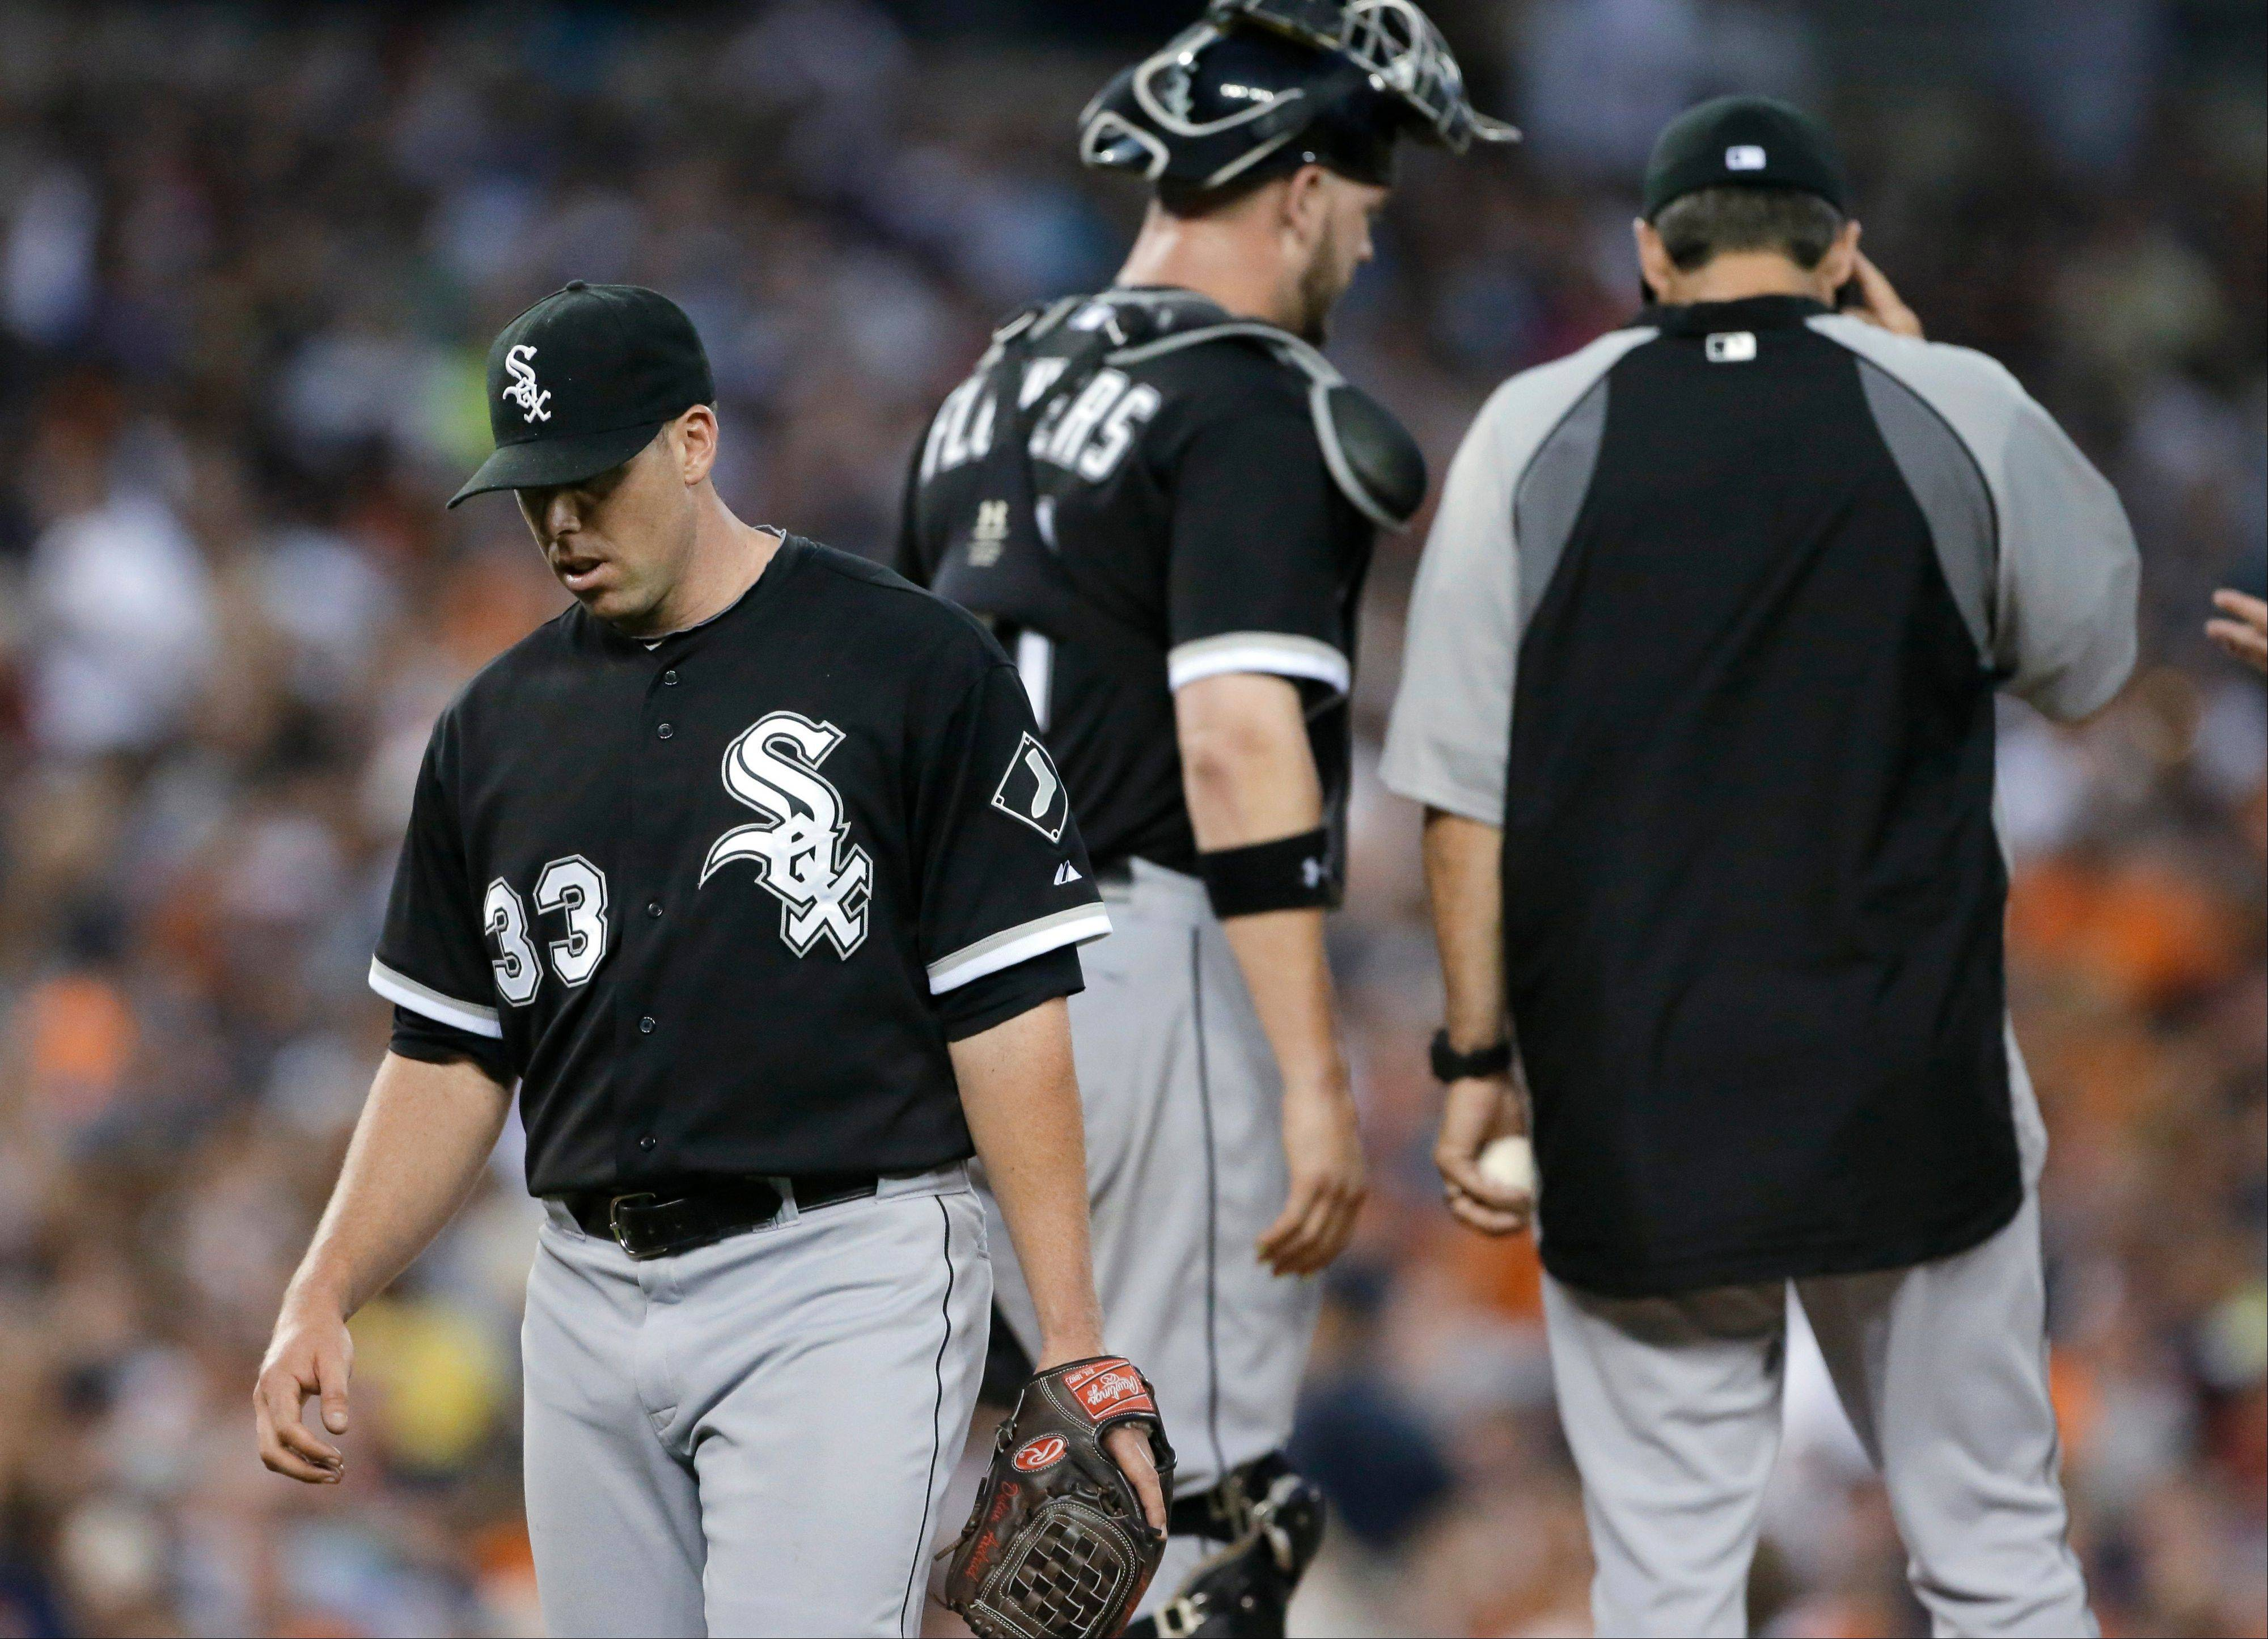 White Sox starting pitcher Dylan Axelrod leaves during Wednesday's sixth inning at Comerica Park in Detroit.